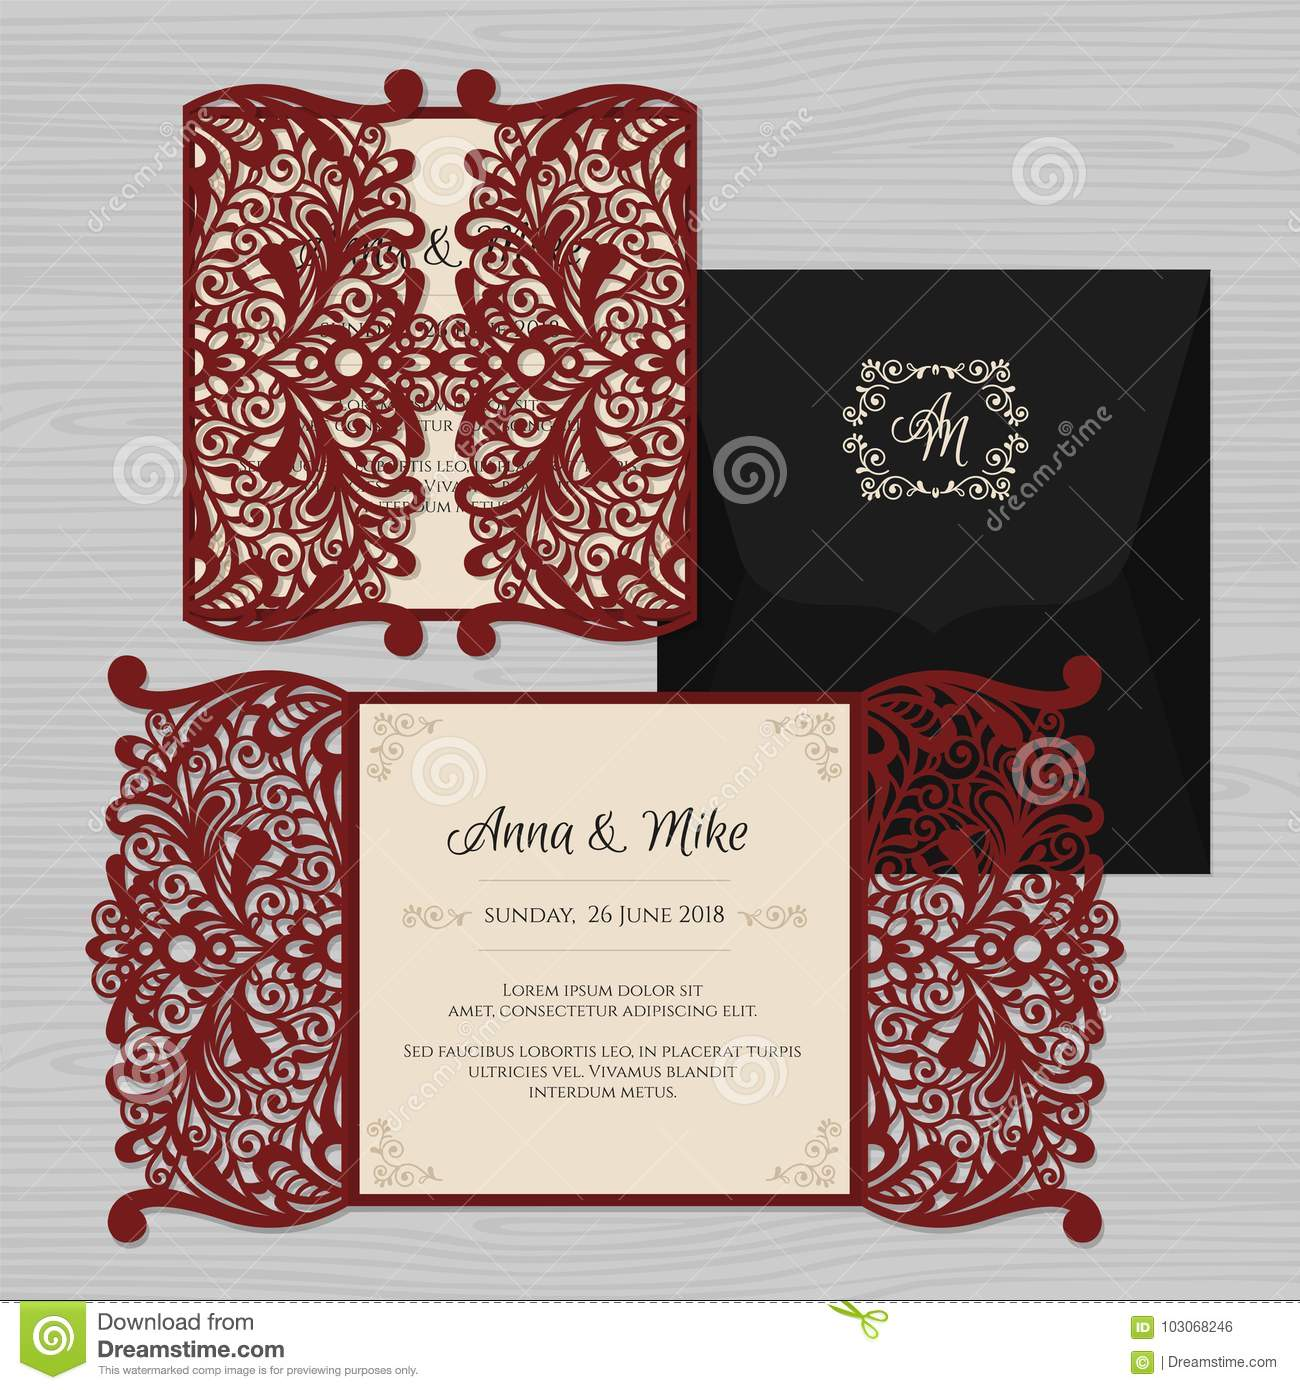 Wedding Invitation Or Greeting Card With Vintage Ornament. Paper ...